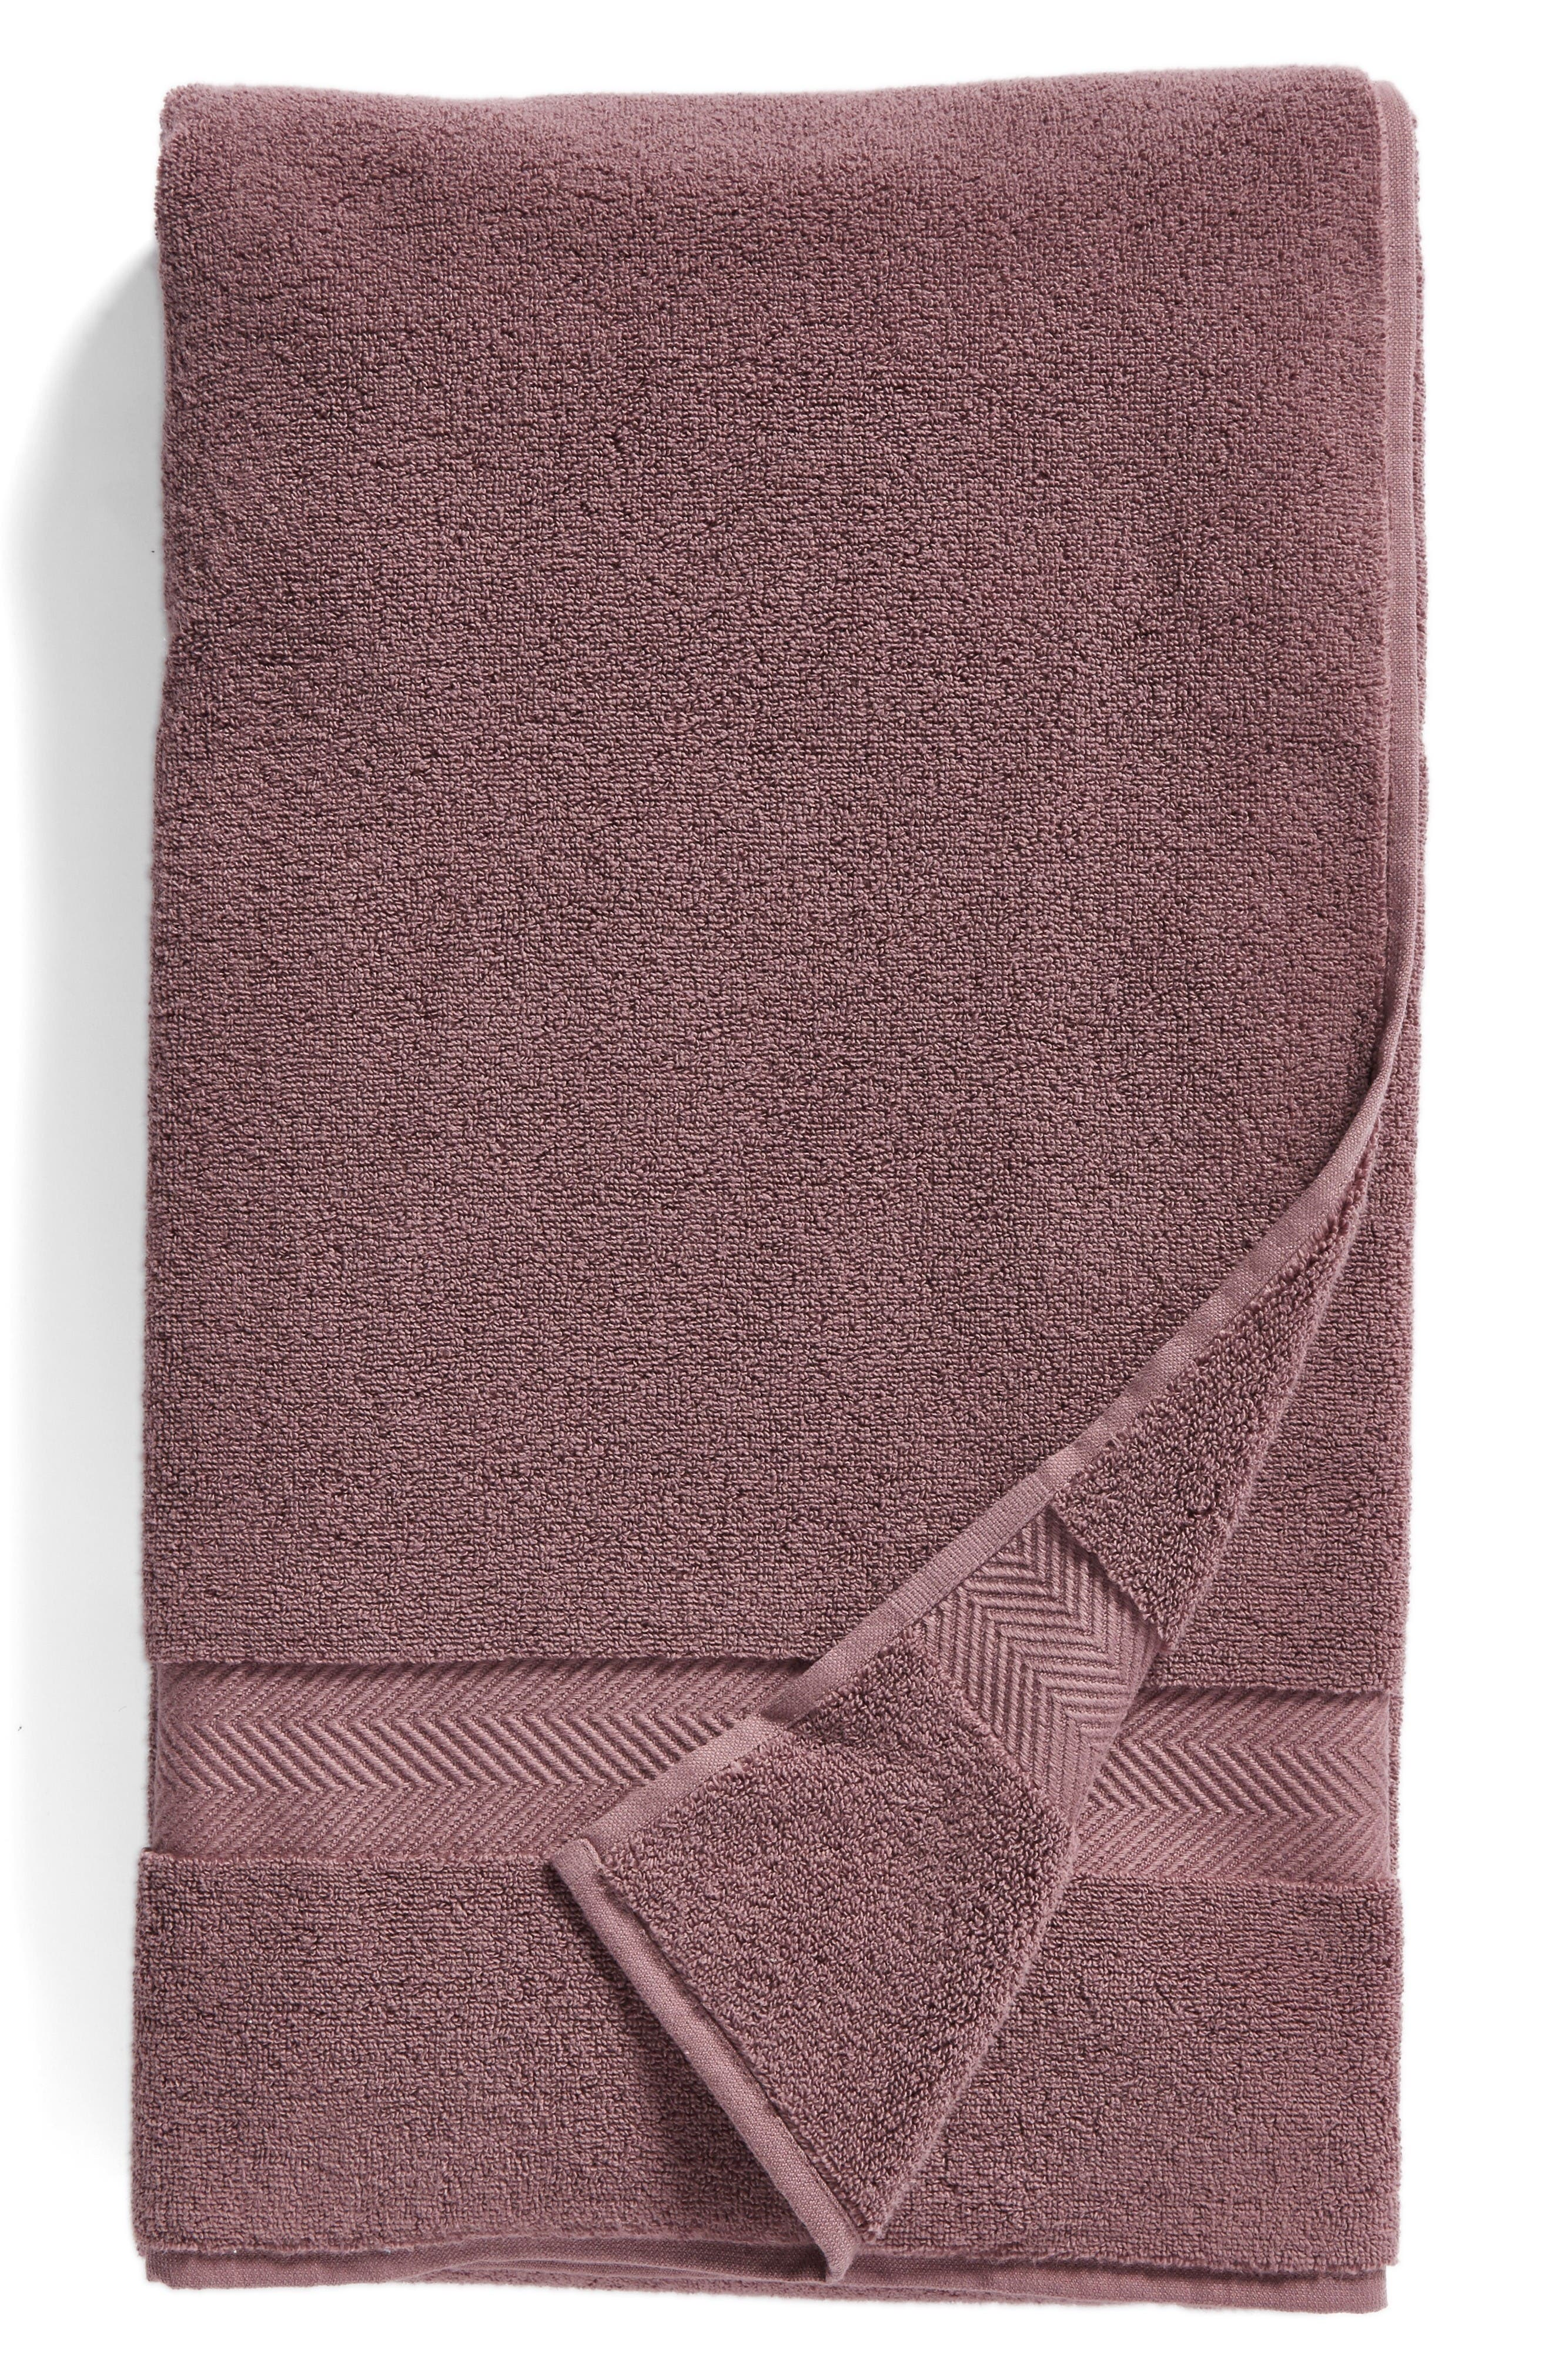 Nordstrom at Home Hydrocotton Bath Sheet